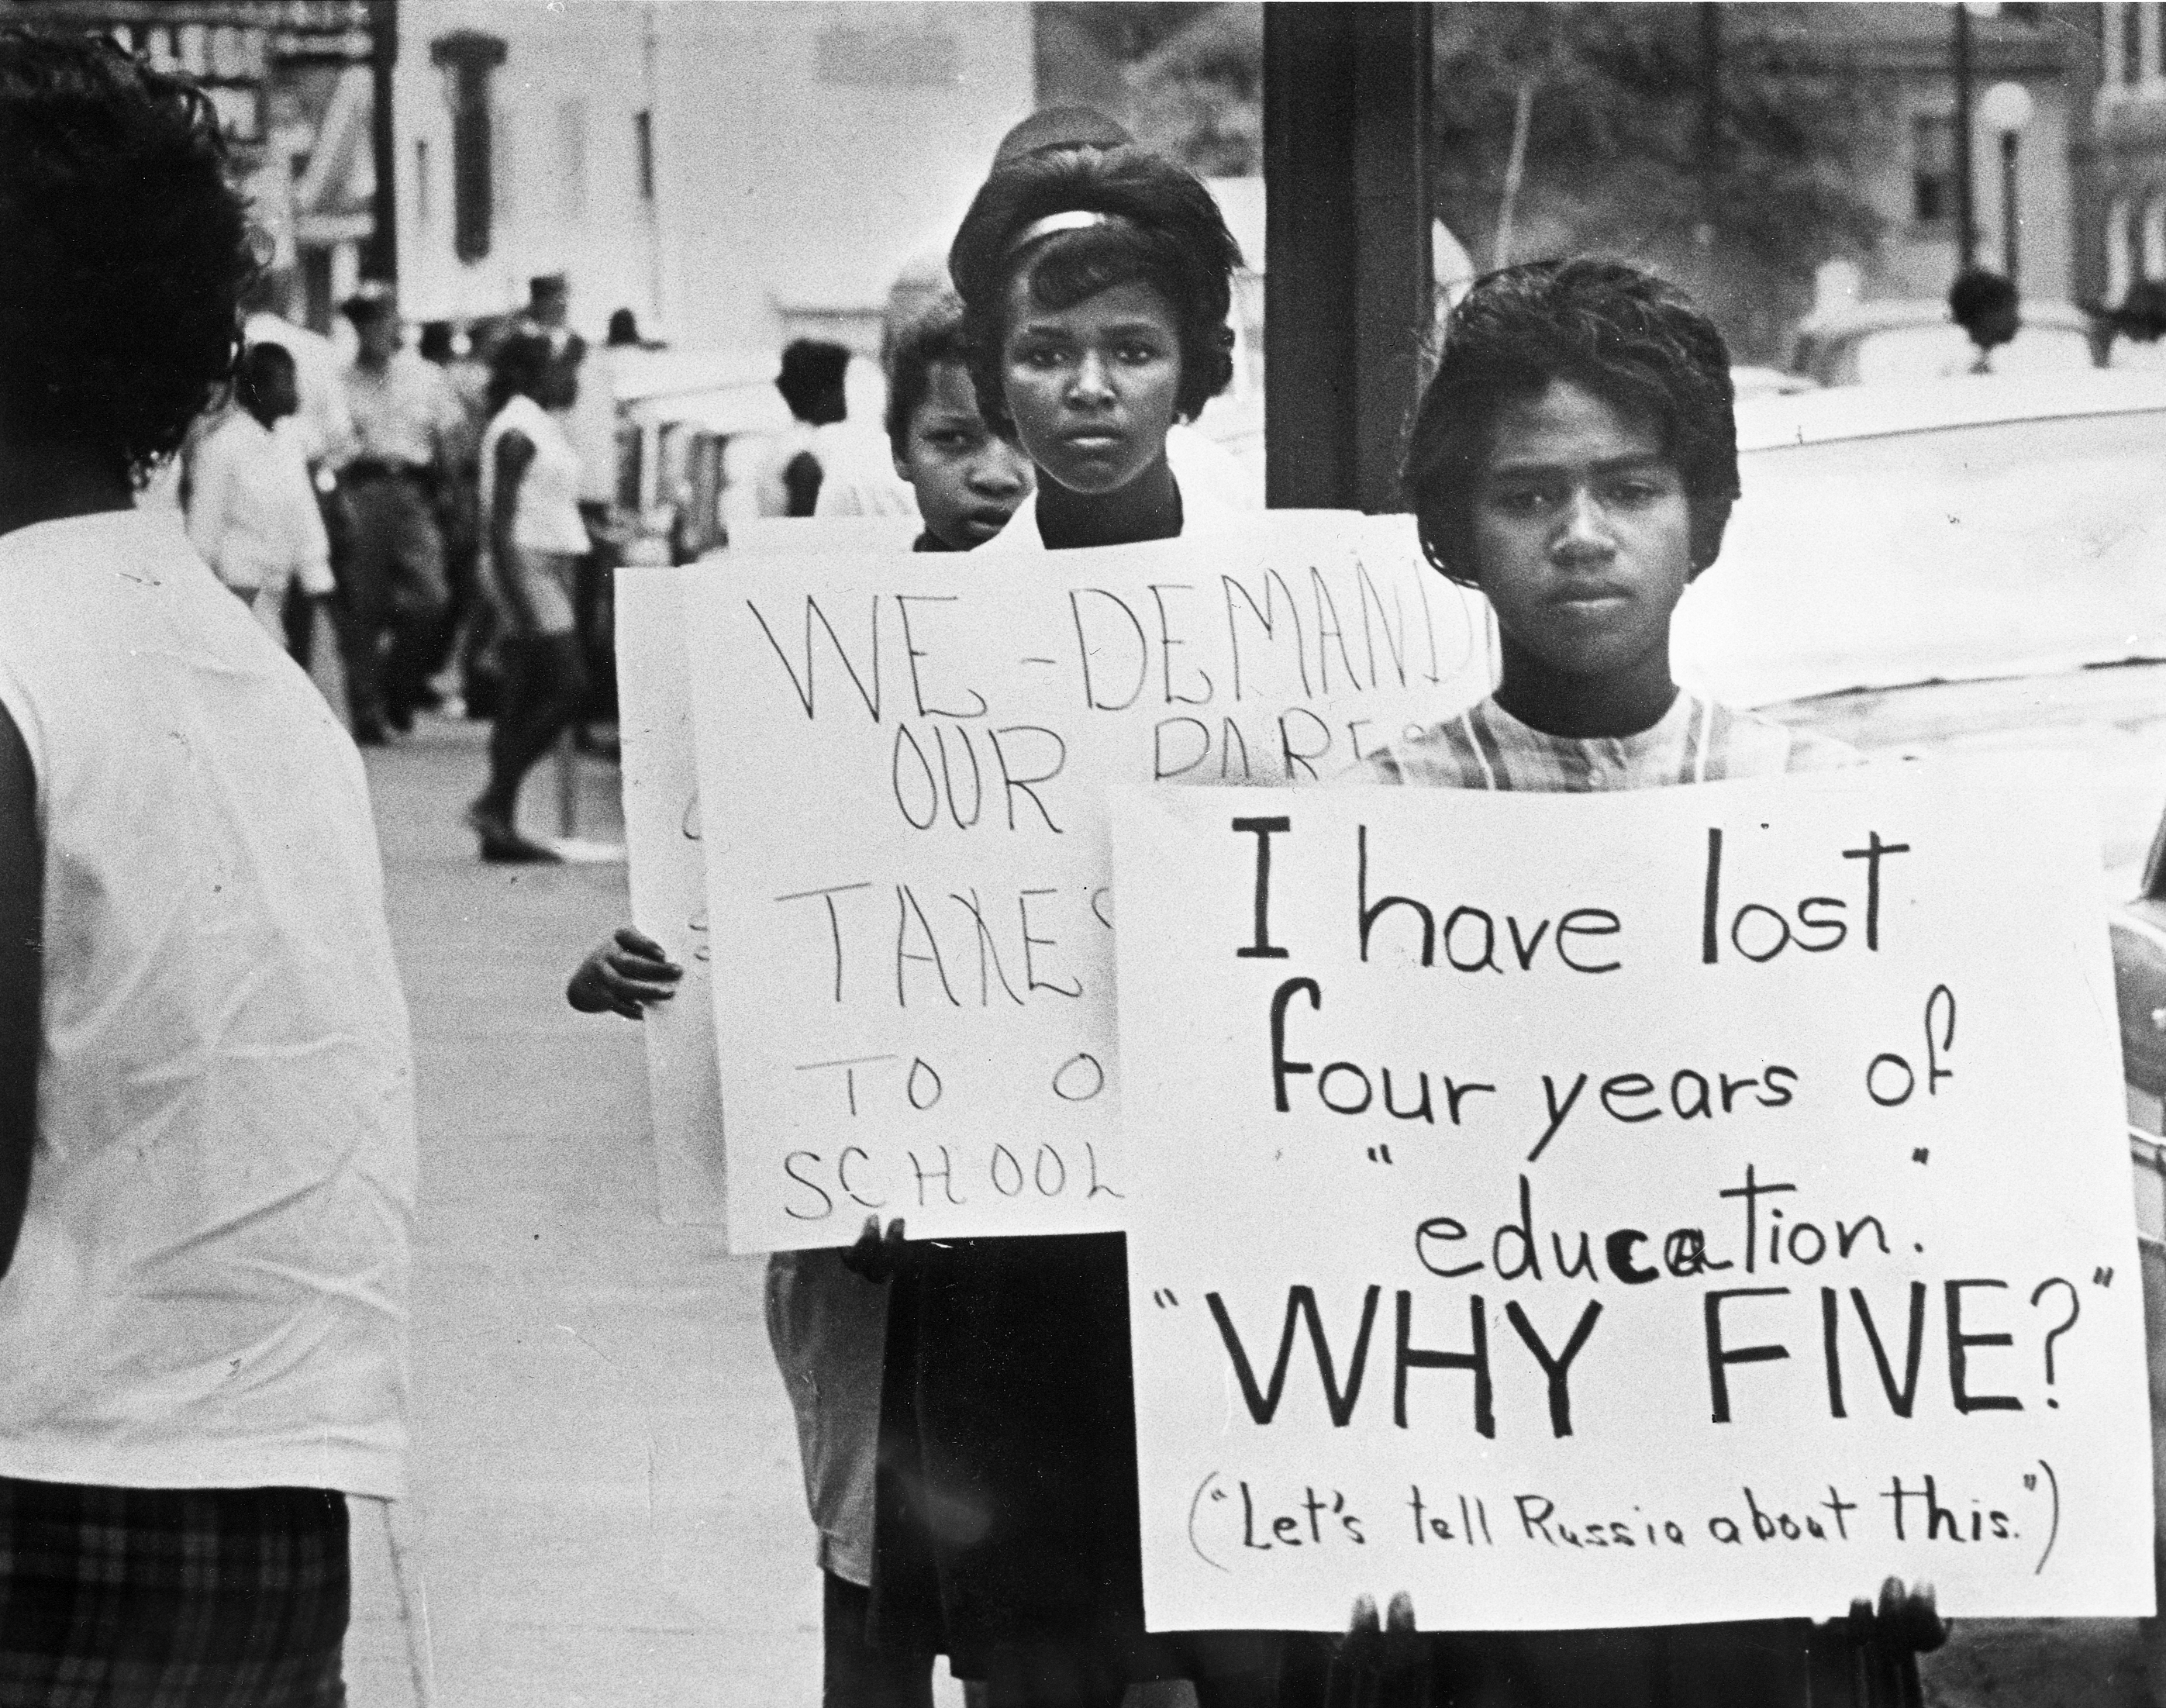 An image of several female African American teenagers holding picket signs